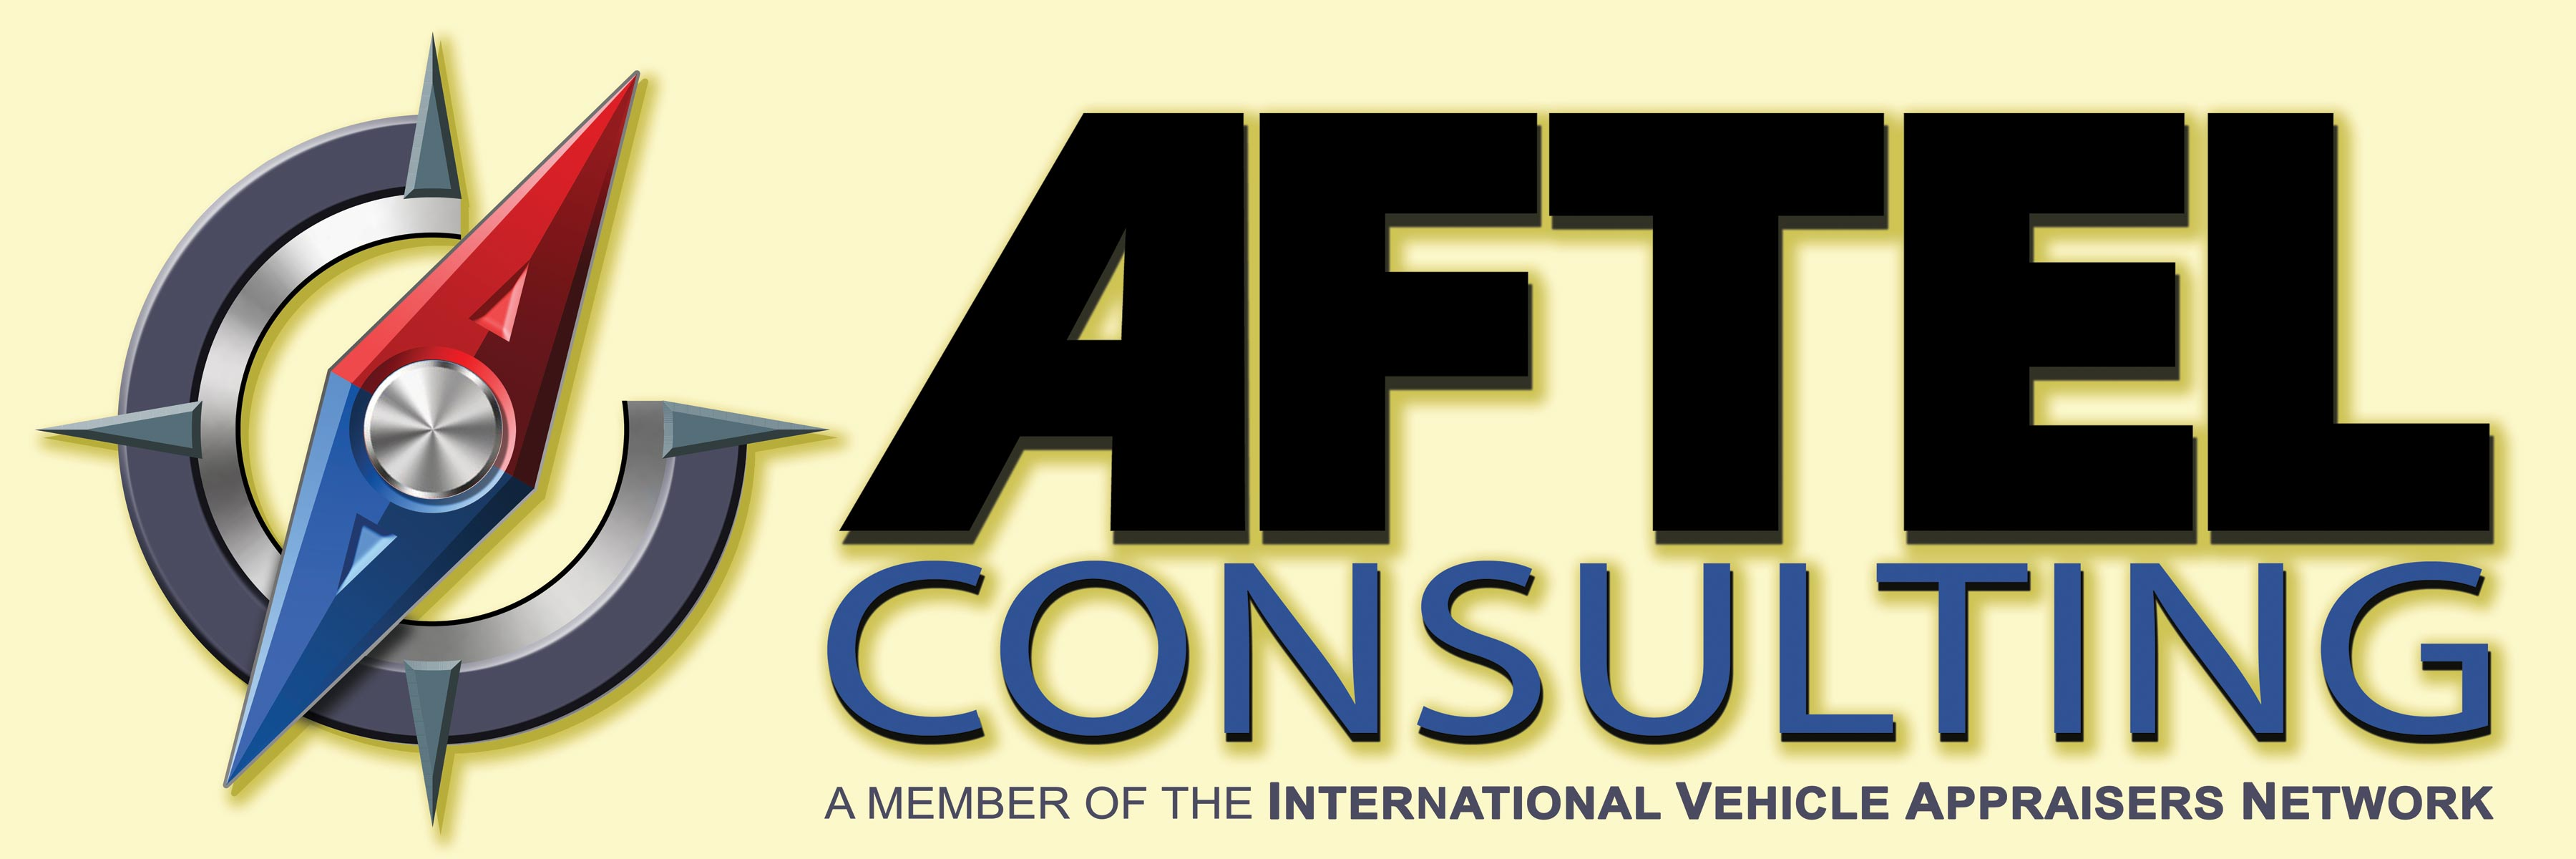 Aftel Consulting Logo